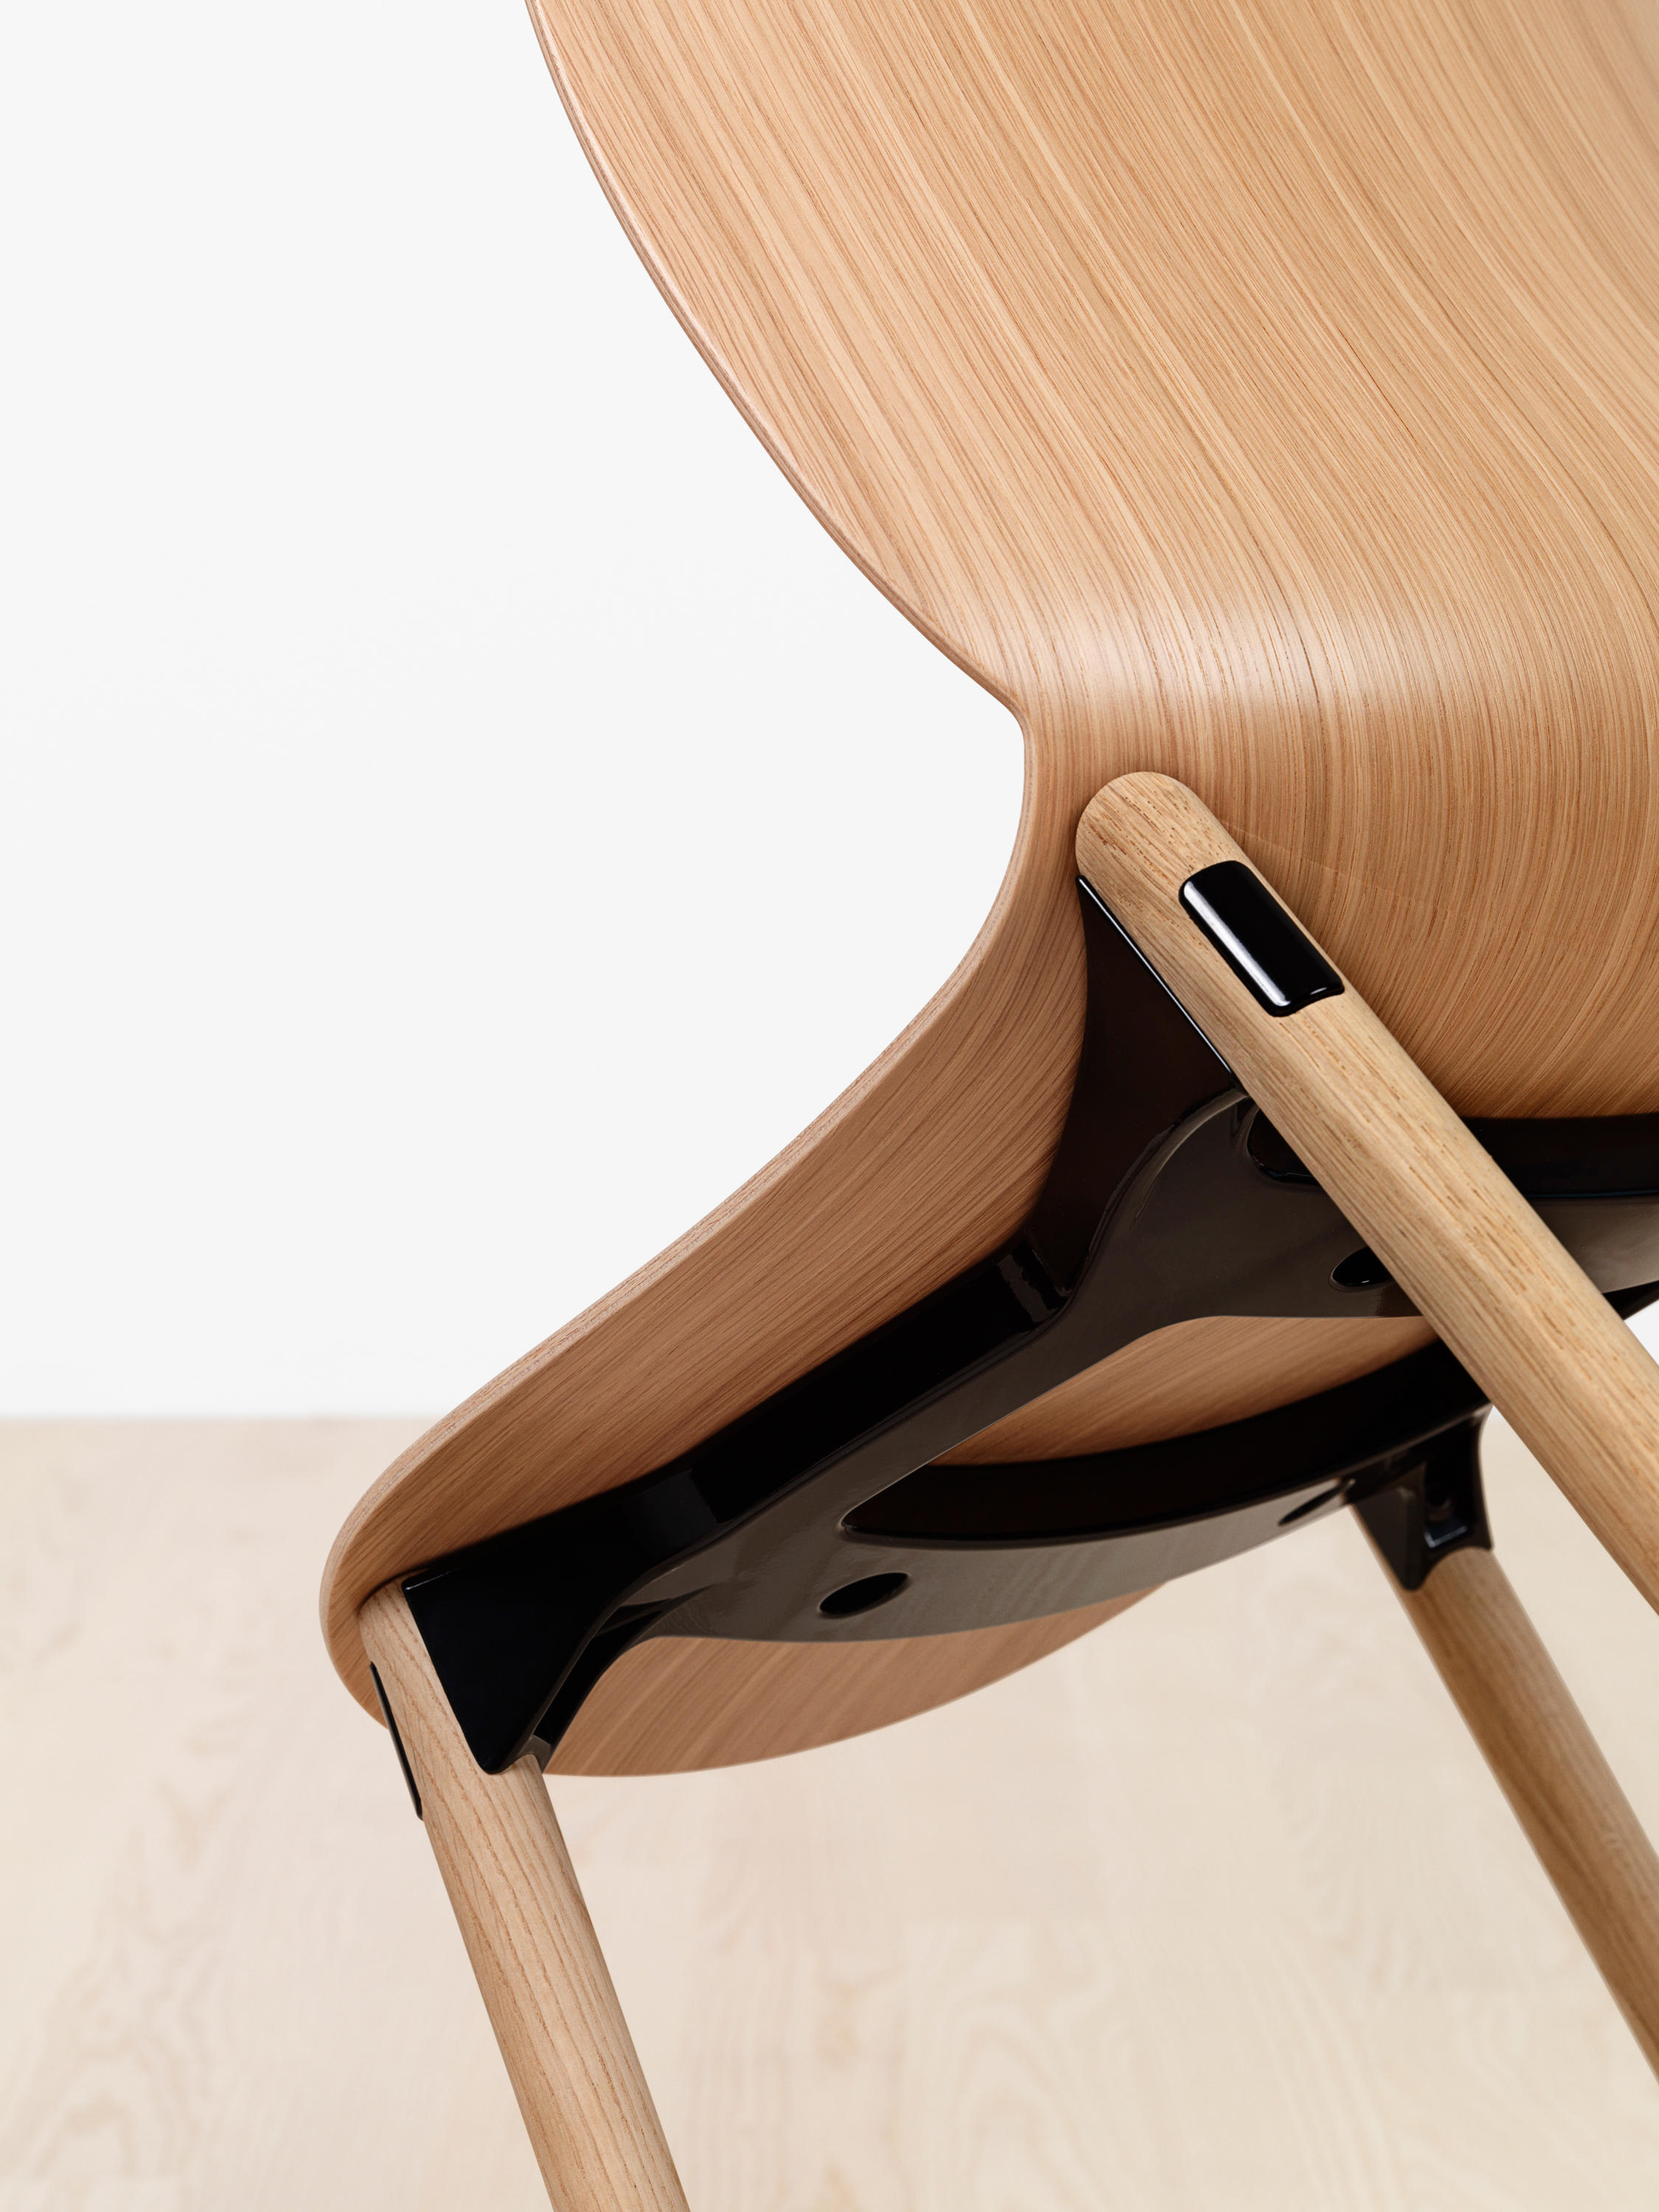 steel chair joints eclectic dining chairs rbm noor 6065 multipurpose from flokk architonic